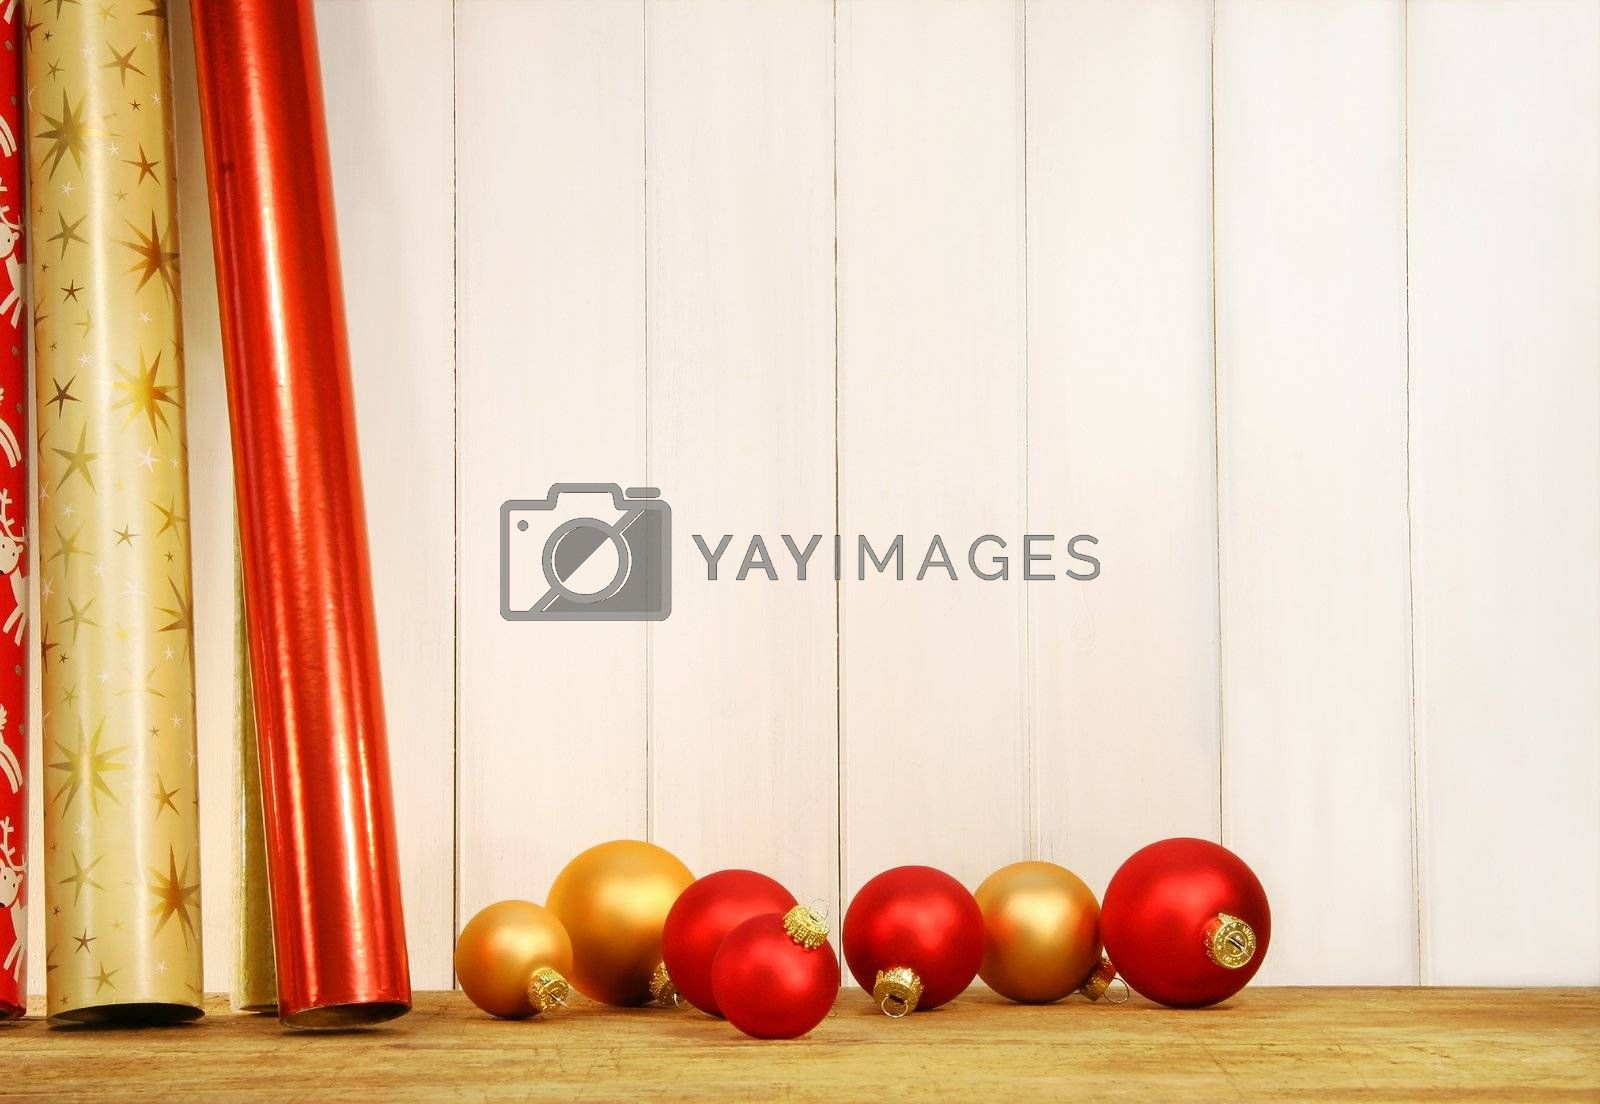 Rolls of holiday wrapping paper against wall with glass balls